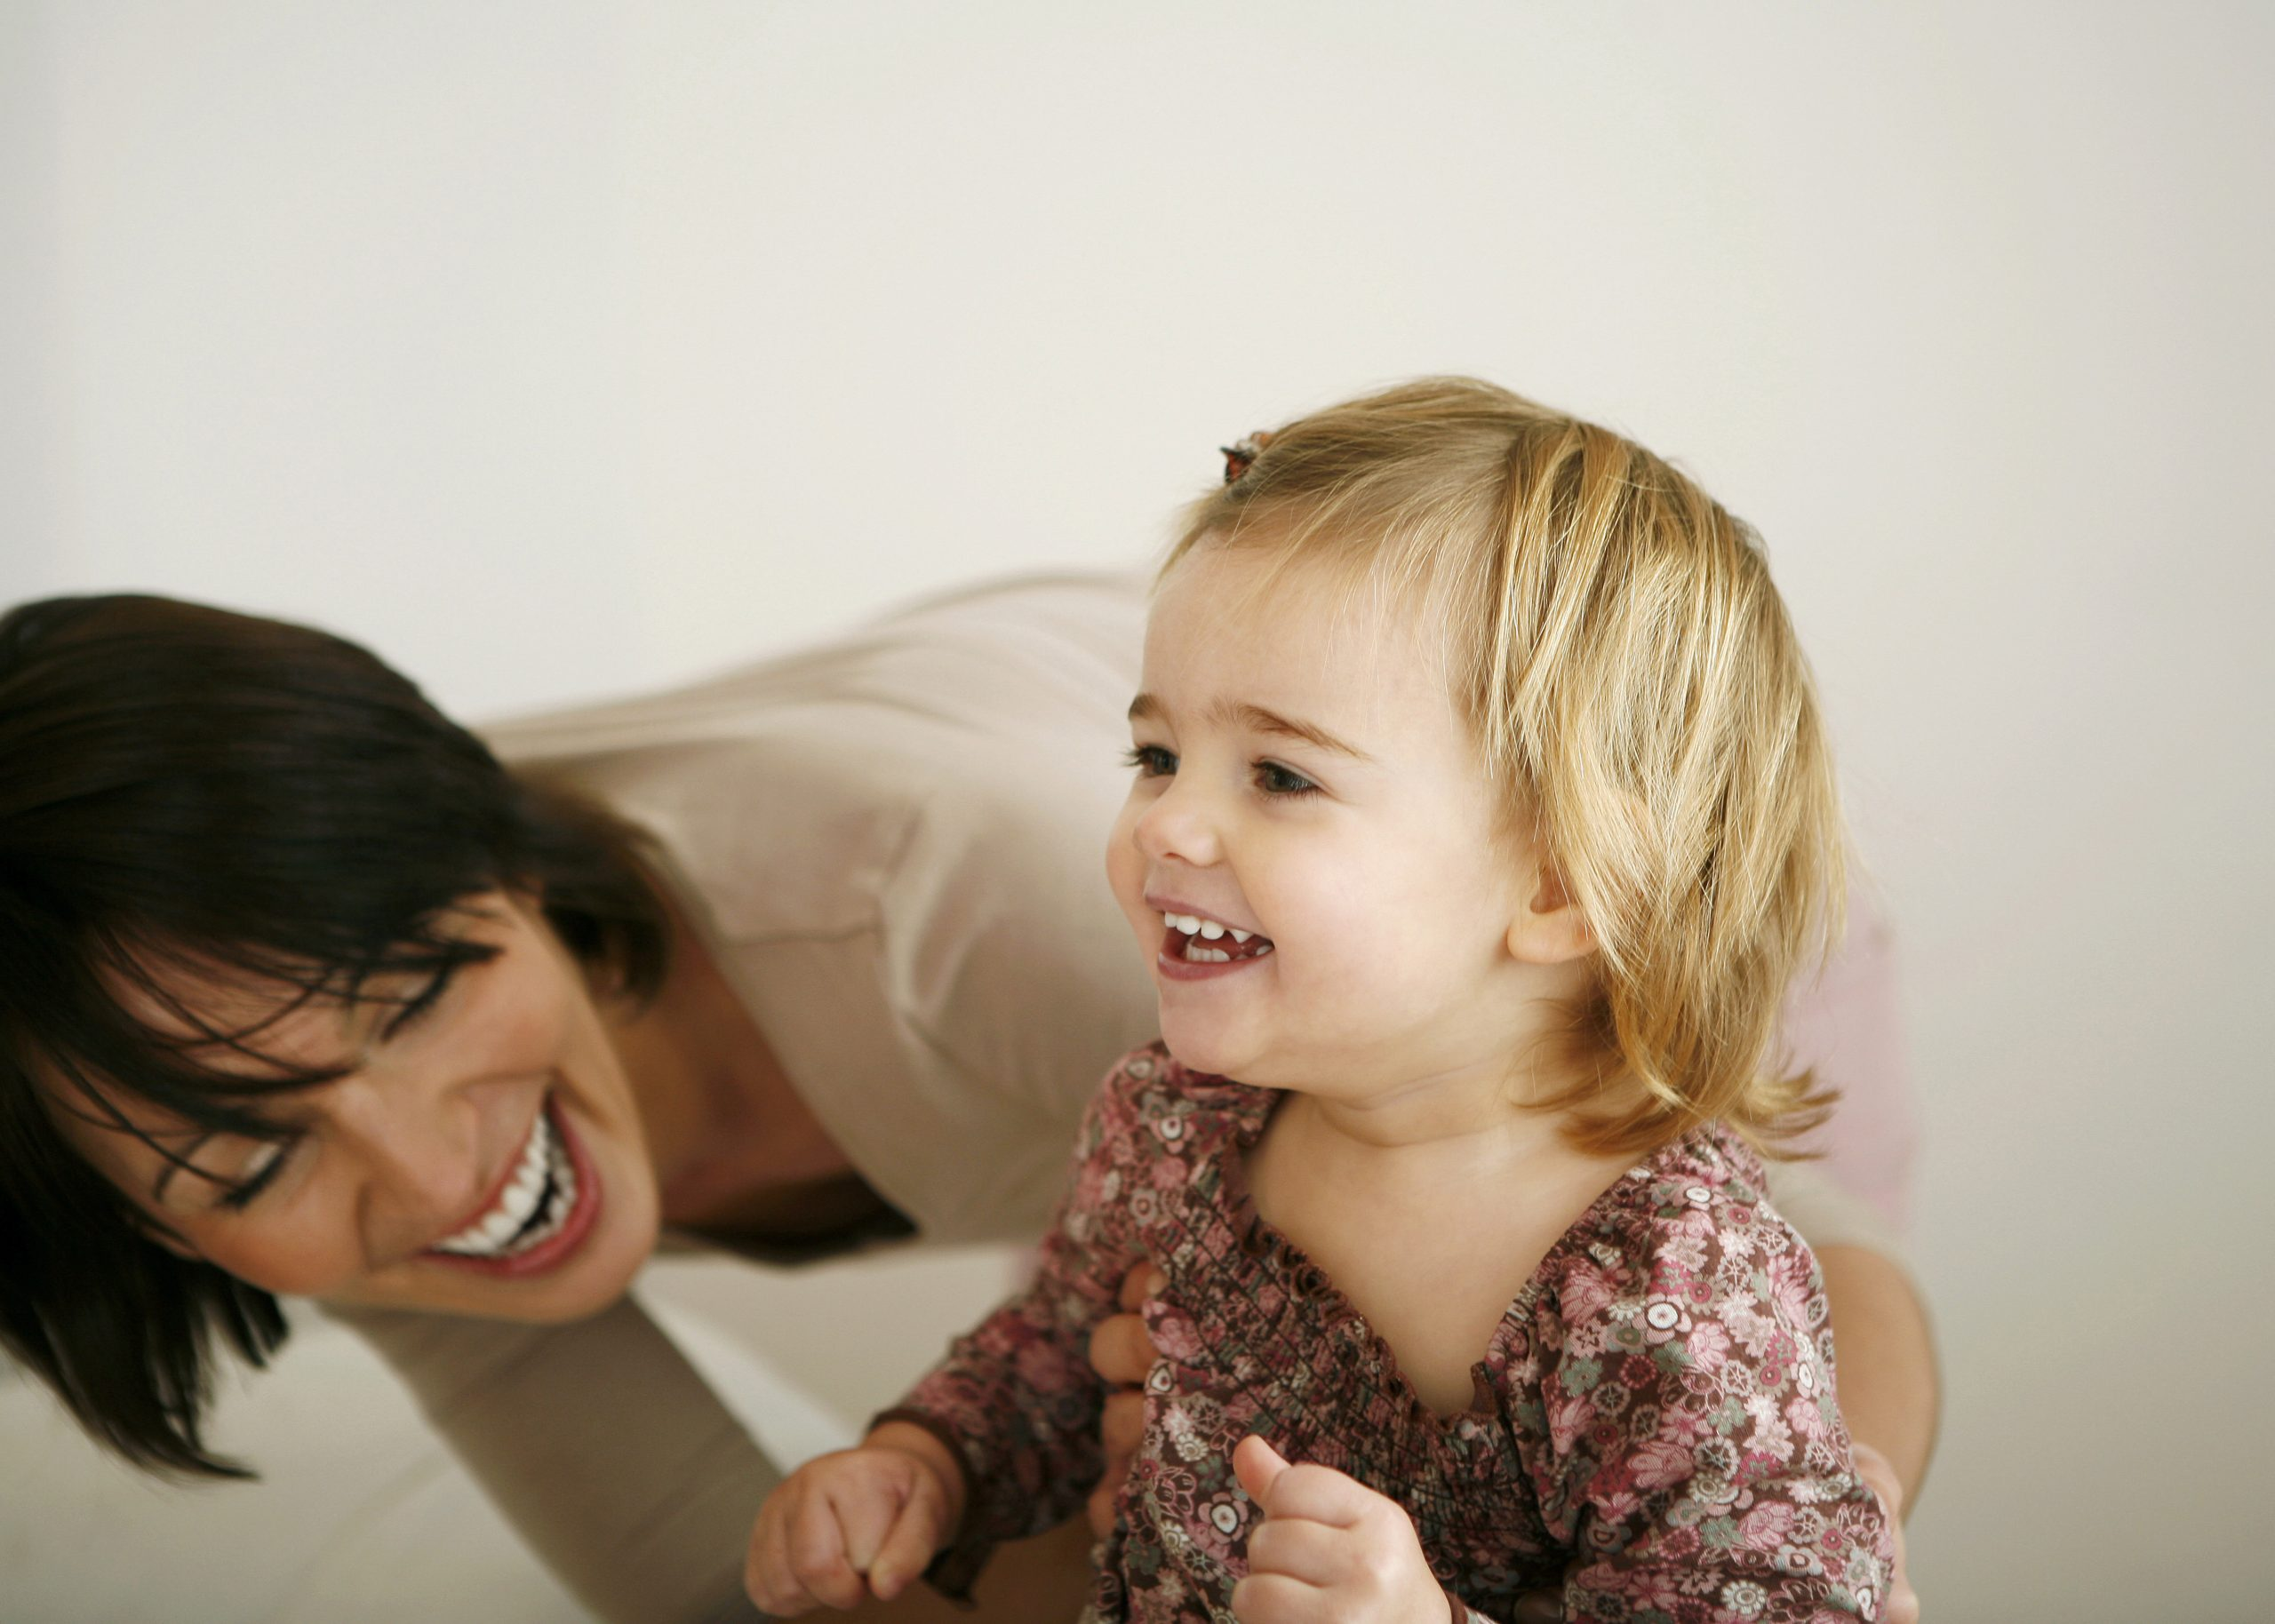 Image of mother and daughter laughing. Link takes you to the Bank of Versailles Next Generation Account page.